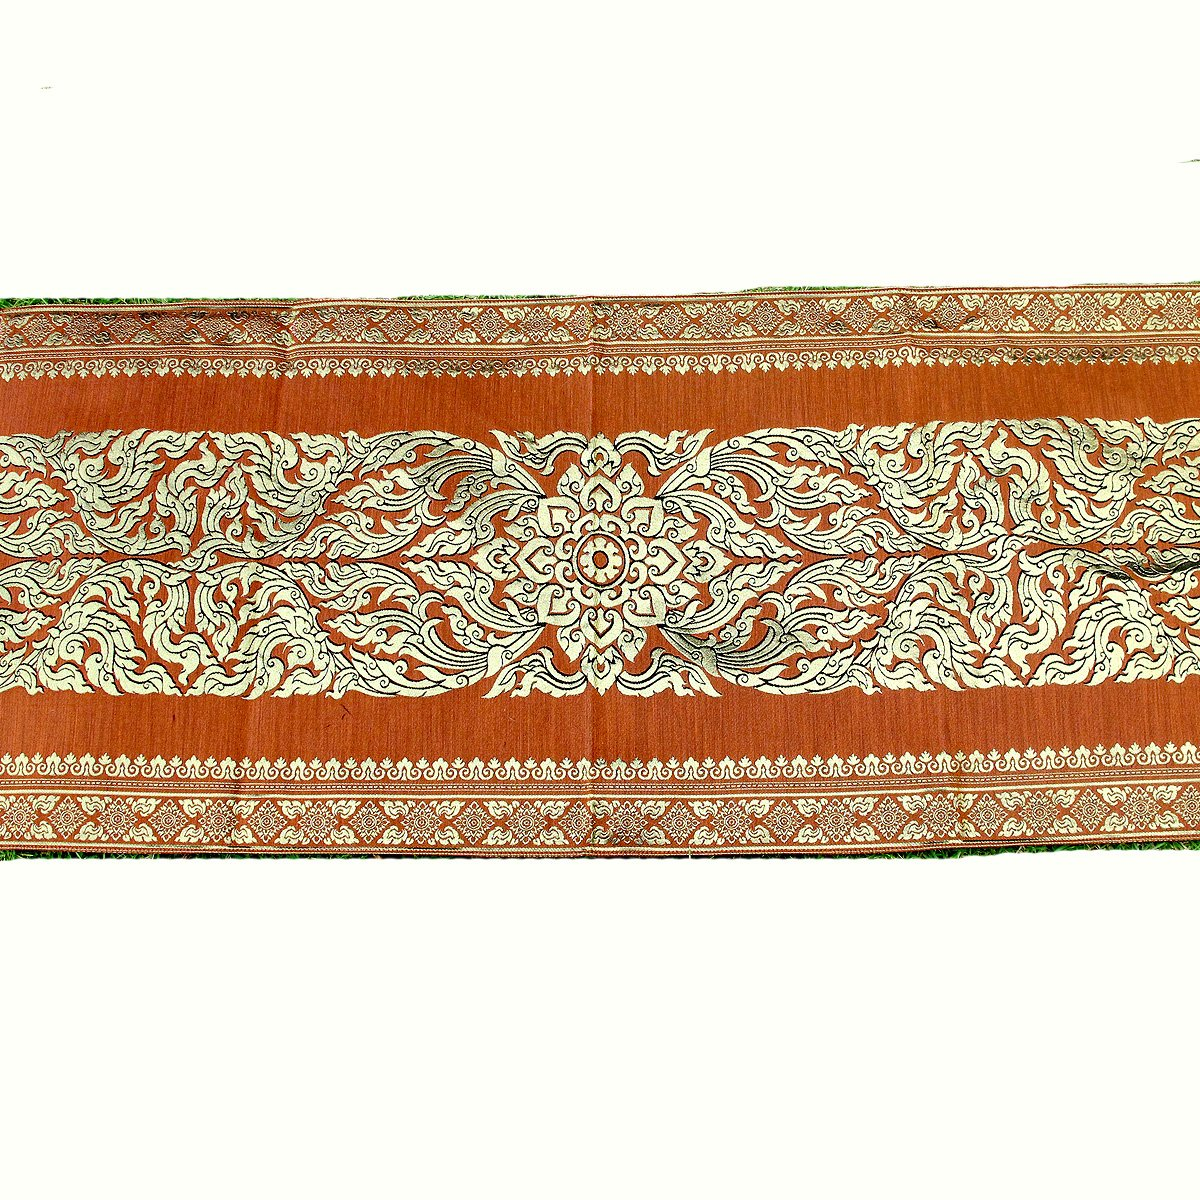 Danai Presents.LOVELY FLORA FOR KING SIZE BED BEAUTIFUL BED RUNNER WIDTH 19 IMCHES LONG 80 INCHES by Thai